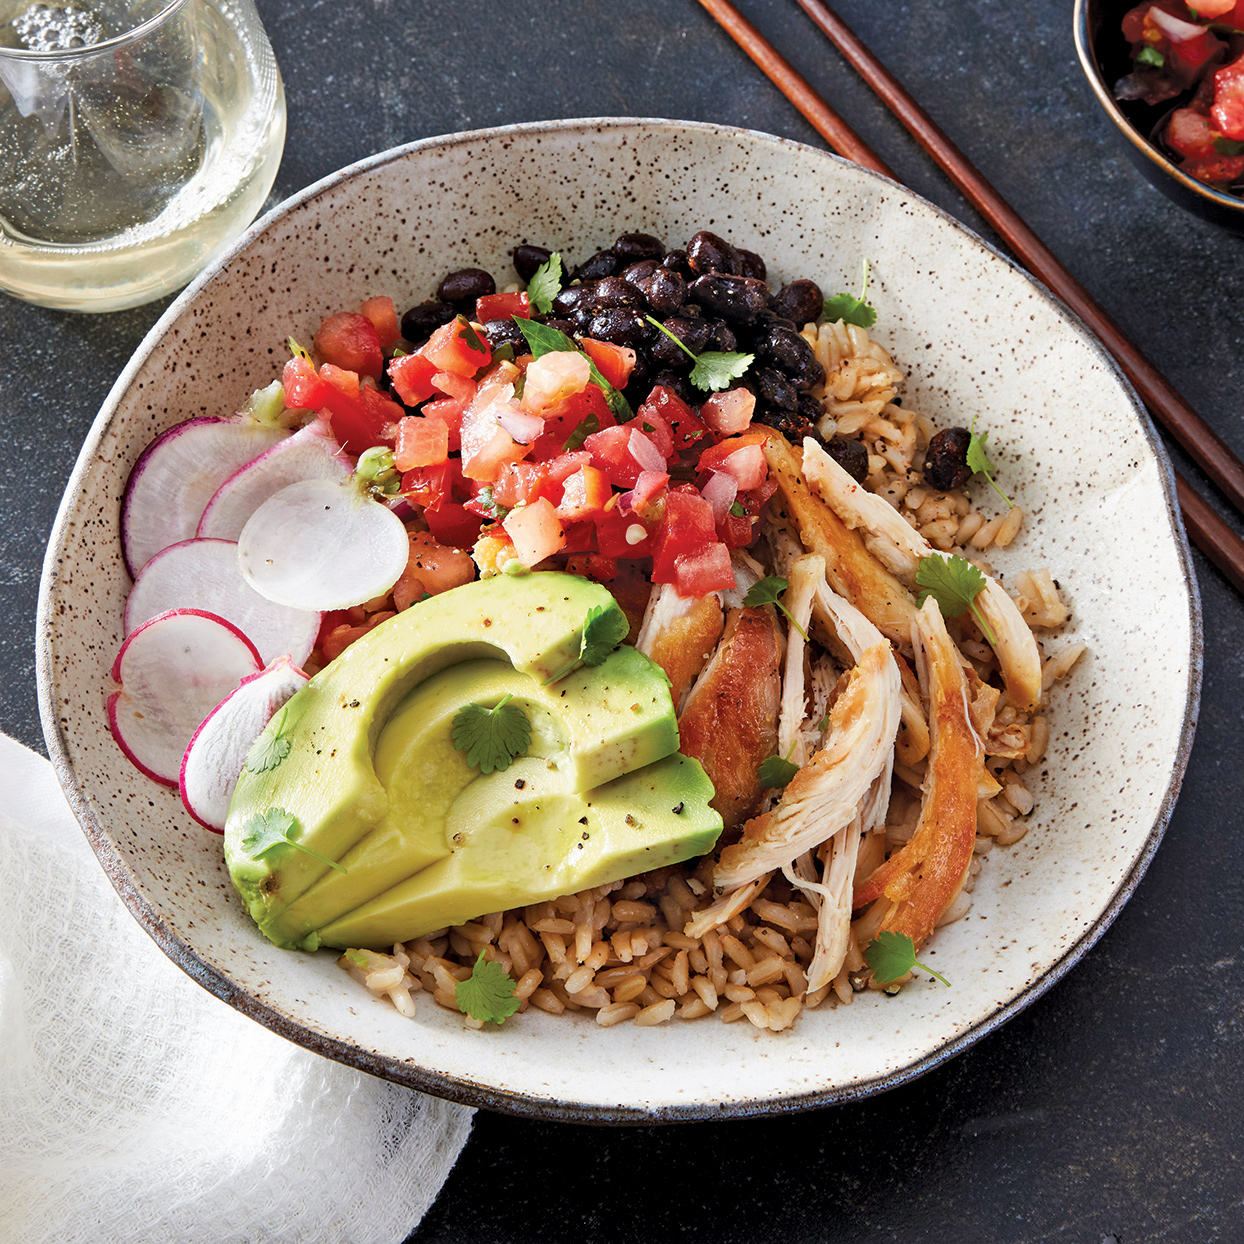 A bowl of tender shredded chicken, hot cooked rice and slightly spicy black beans served with fresh toppings is a meal that will satisfy anytime. Make this slow-cooker chicken dish on the weekend and reheat throughout the week for easy at-work lunches or dinner at the end of a long day. For a variation, swap the brown rice for a grain medley. Source: Everyday Slow Cooker